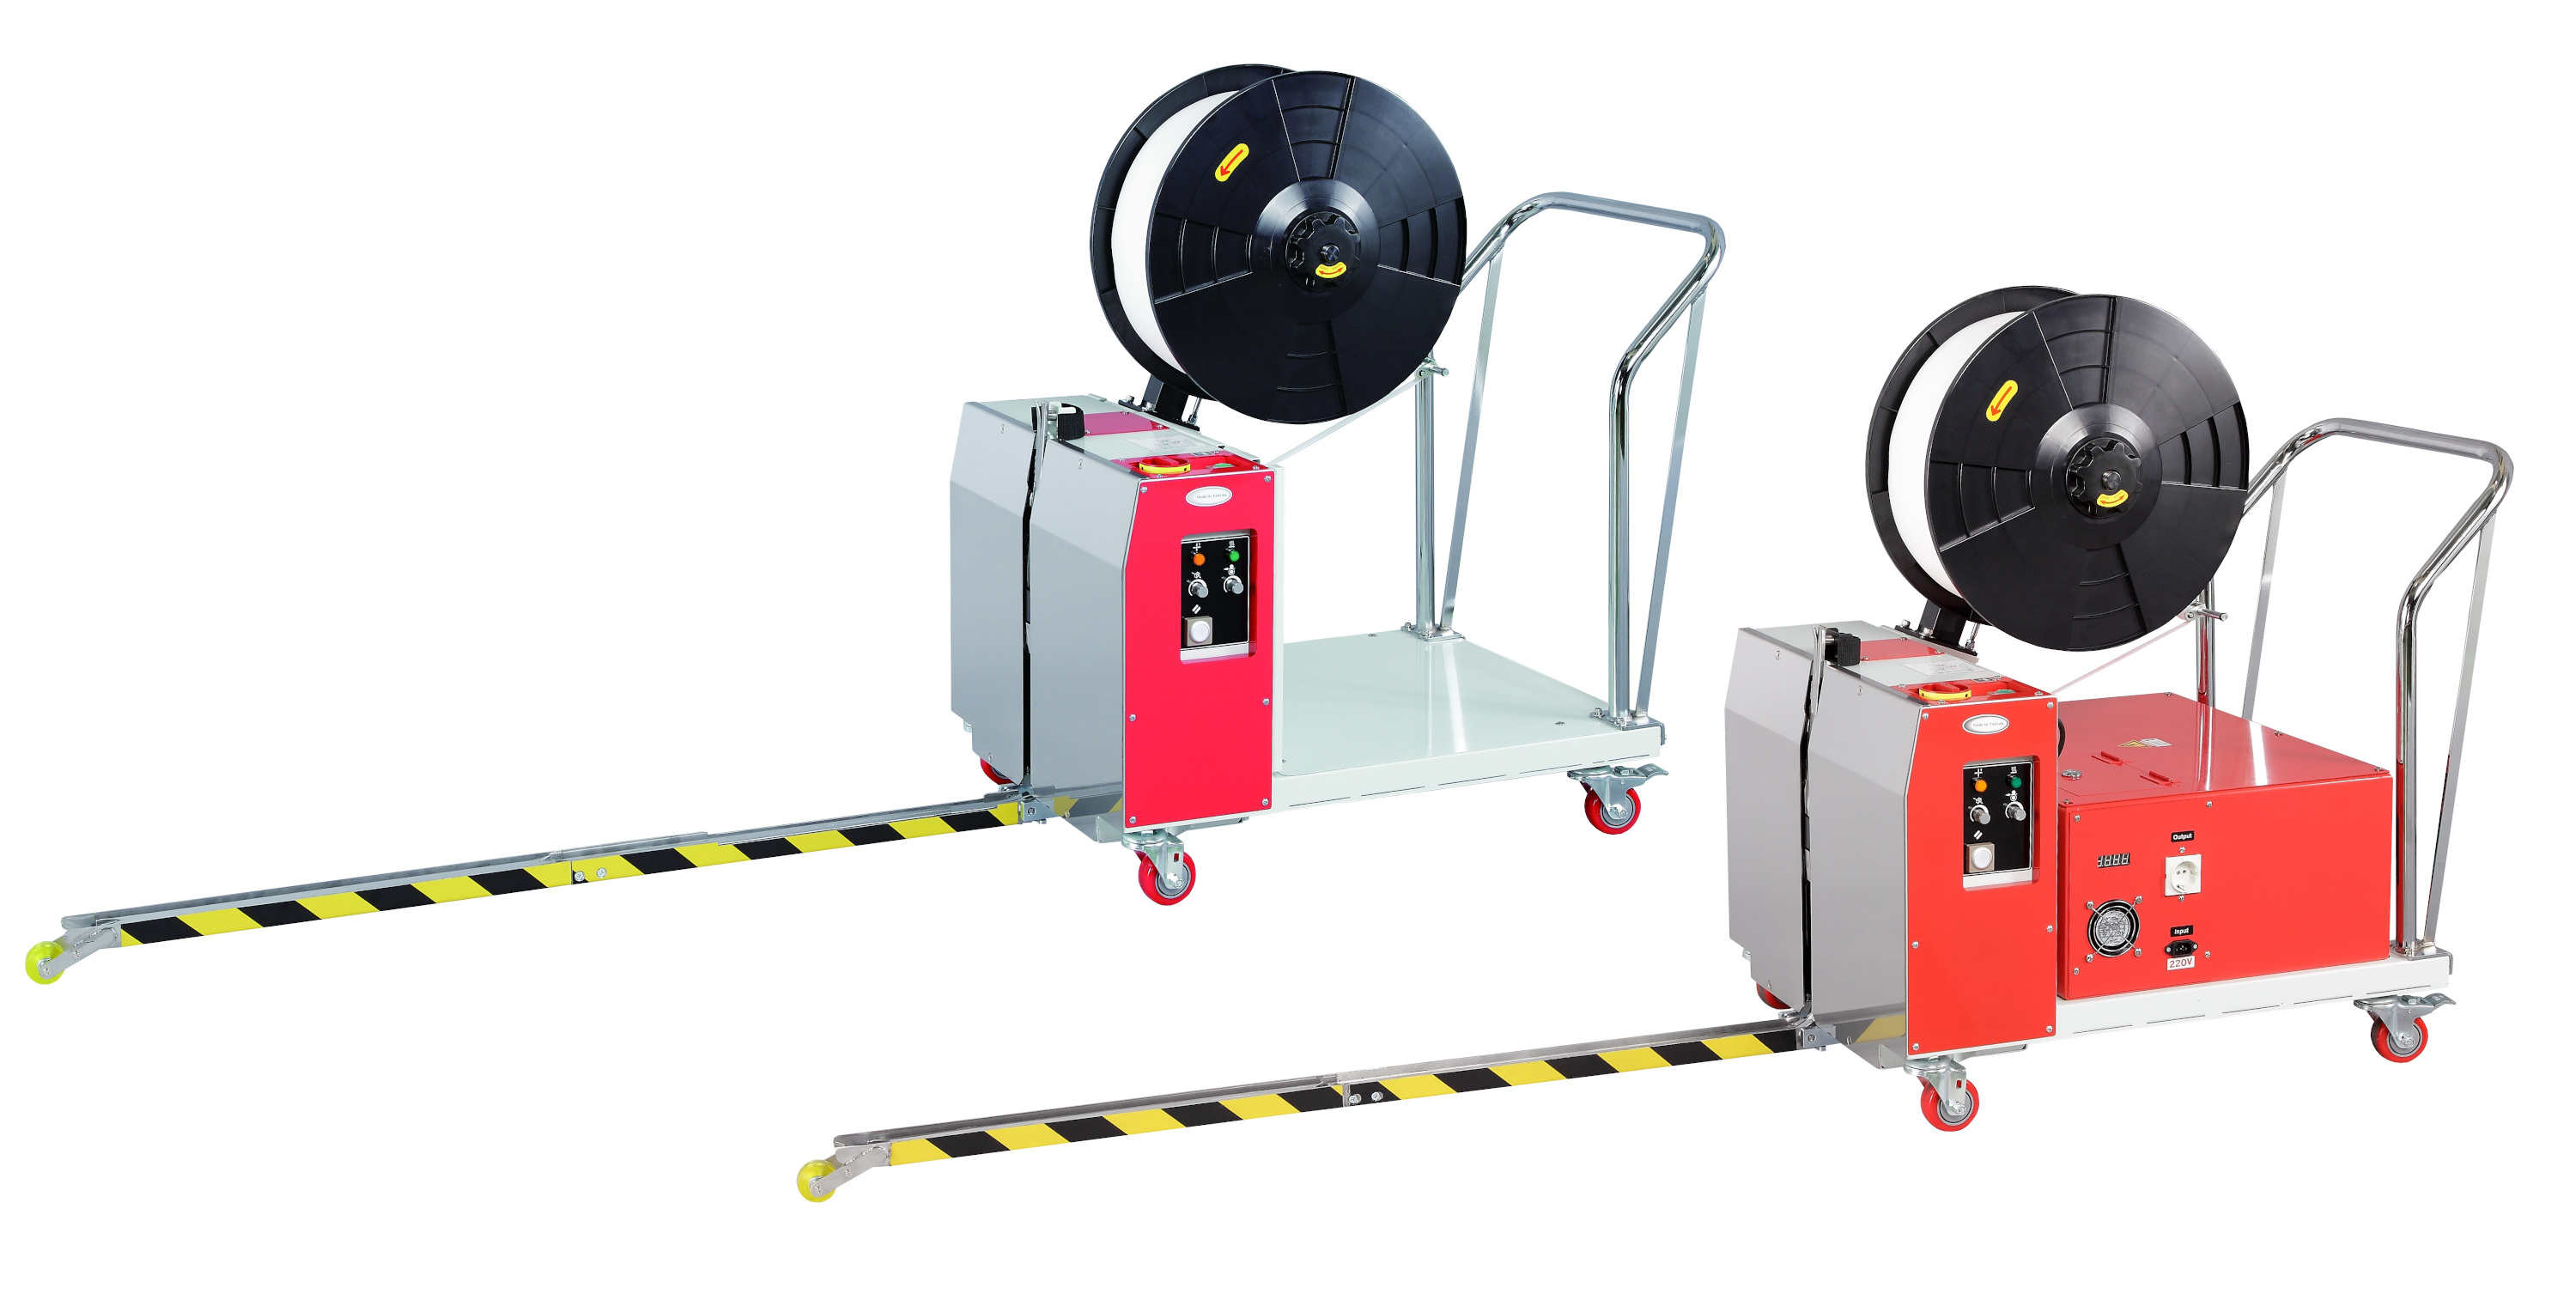 Are you looking for the simplest solution for machine strapping of pallets?